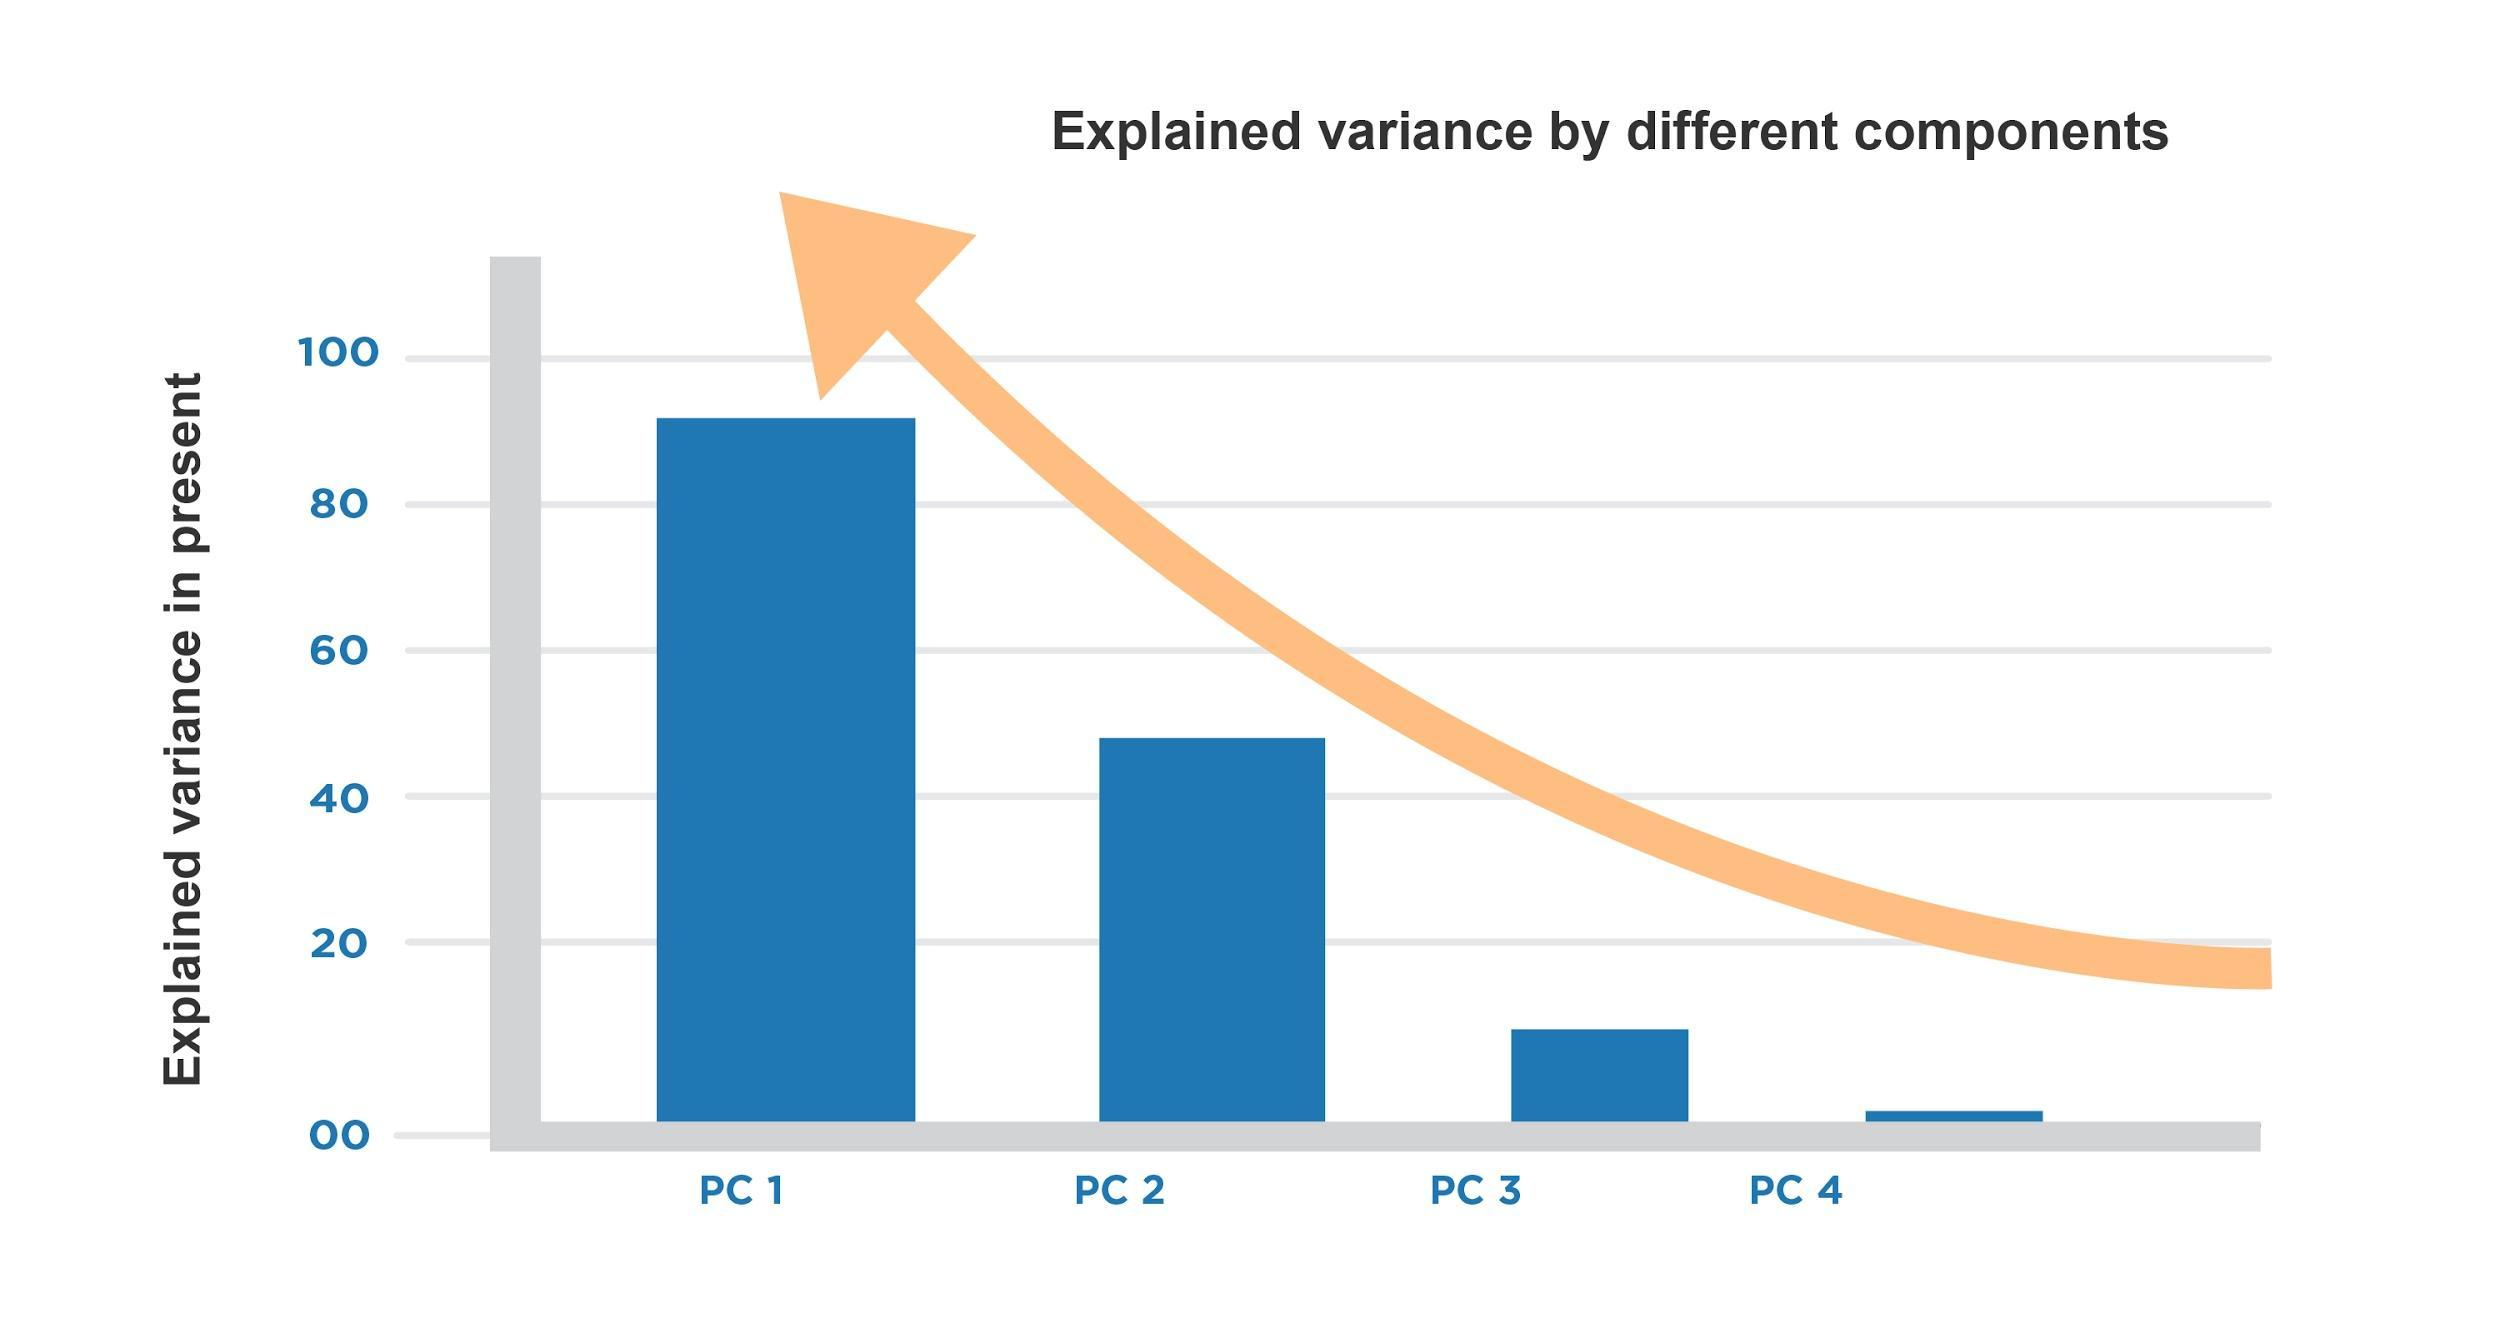 Variance in principal component analysis is explained